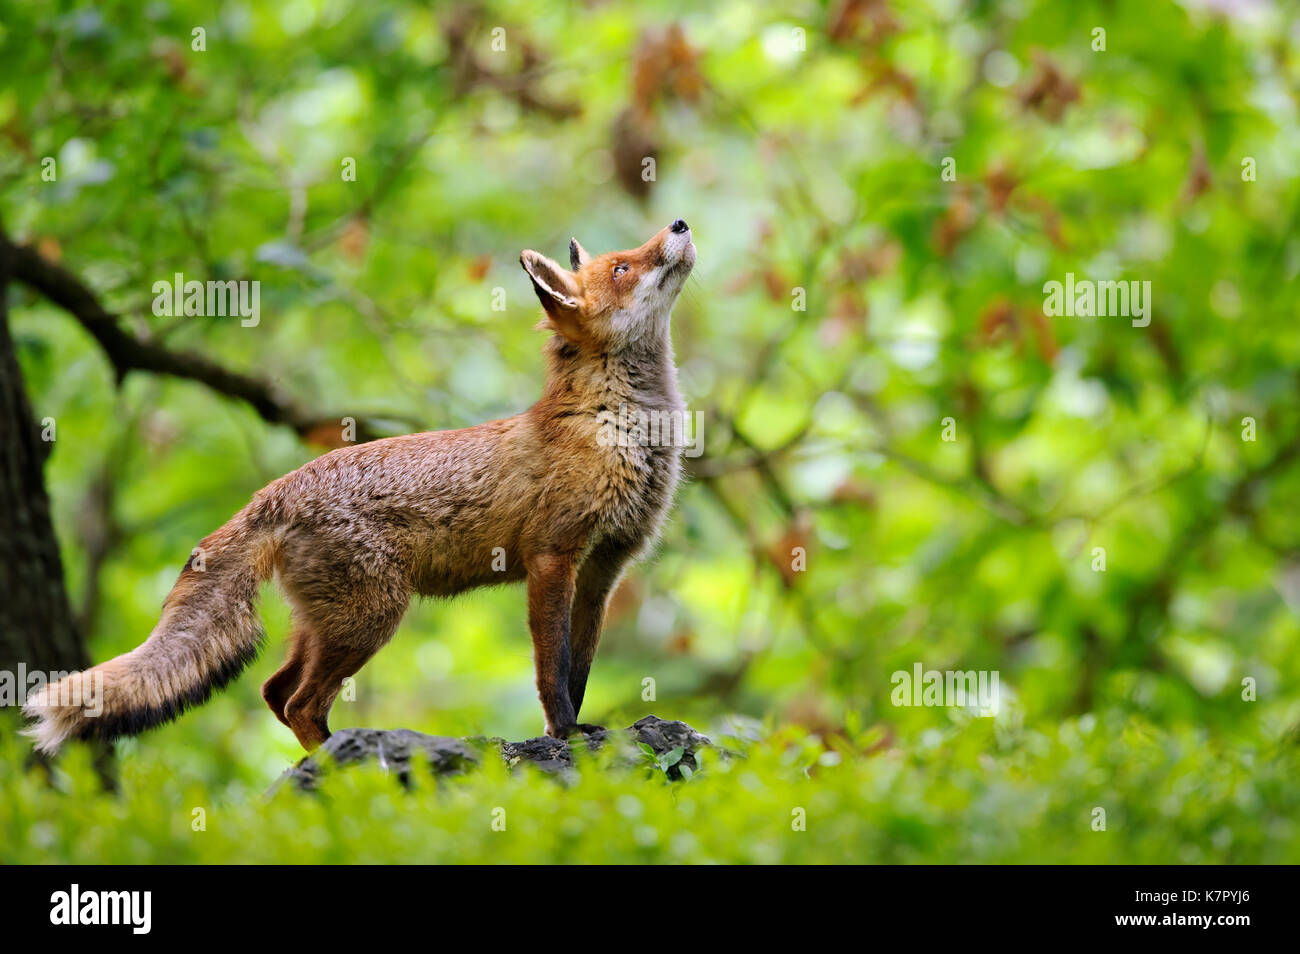 Fox with beatiful forrest background - Stock Image